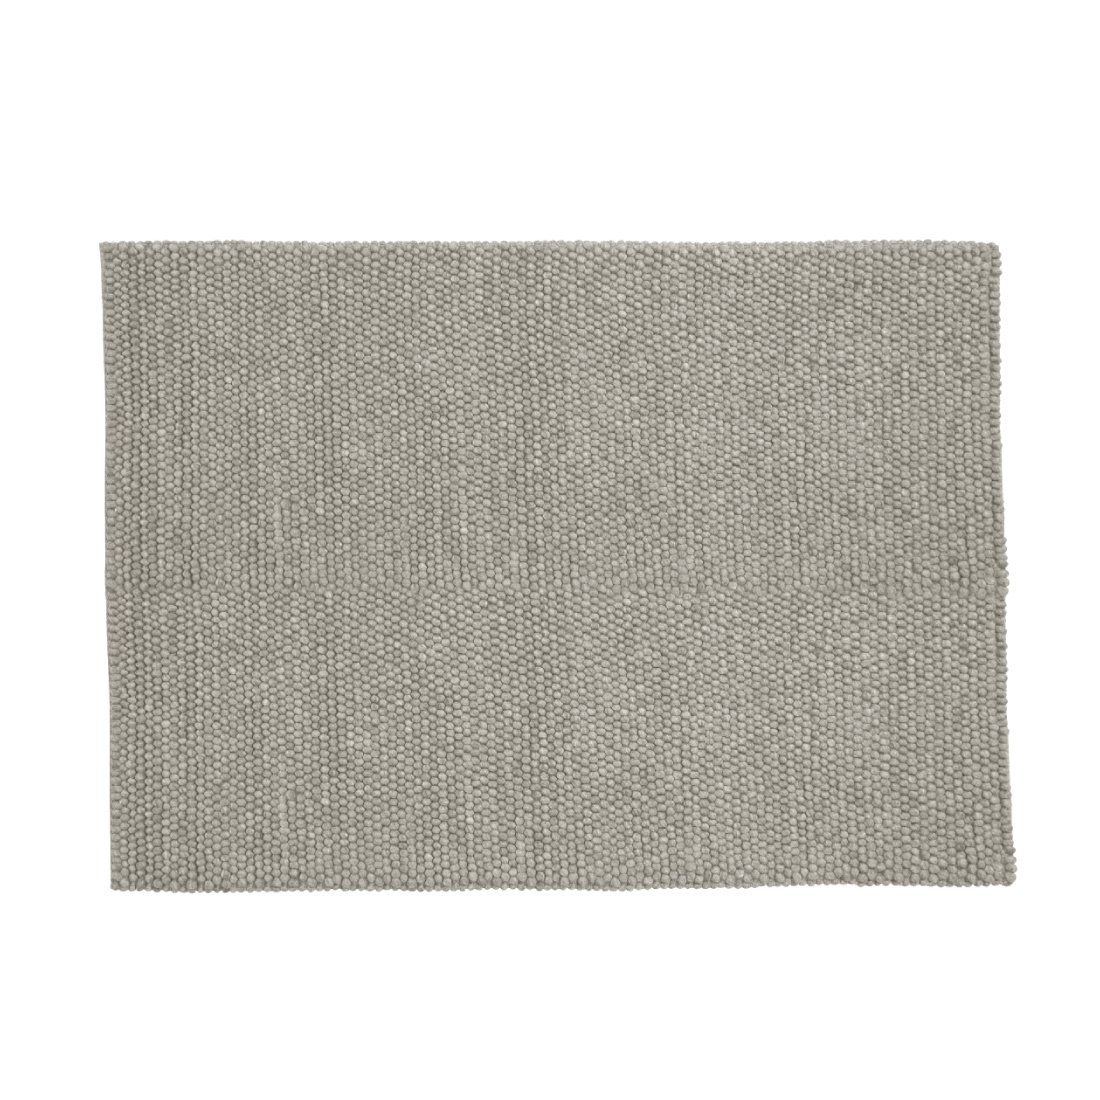 HAY Peas Karpet Vloerkleed Medium Grey 140 x 200 cm